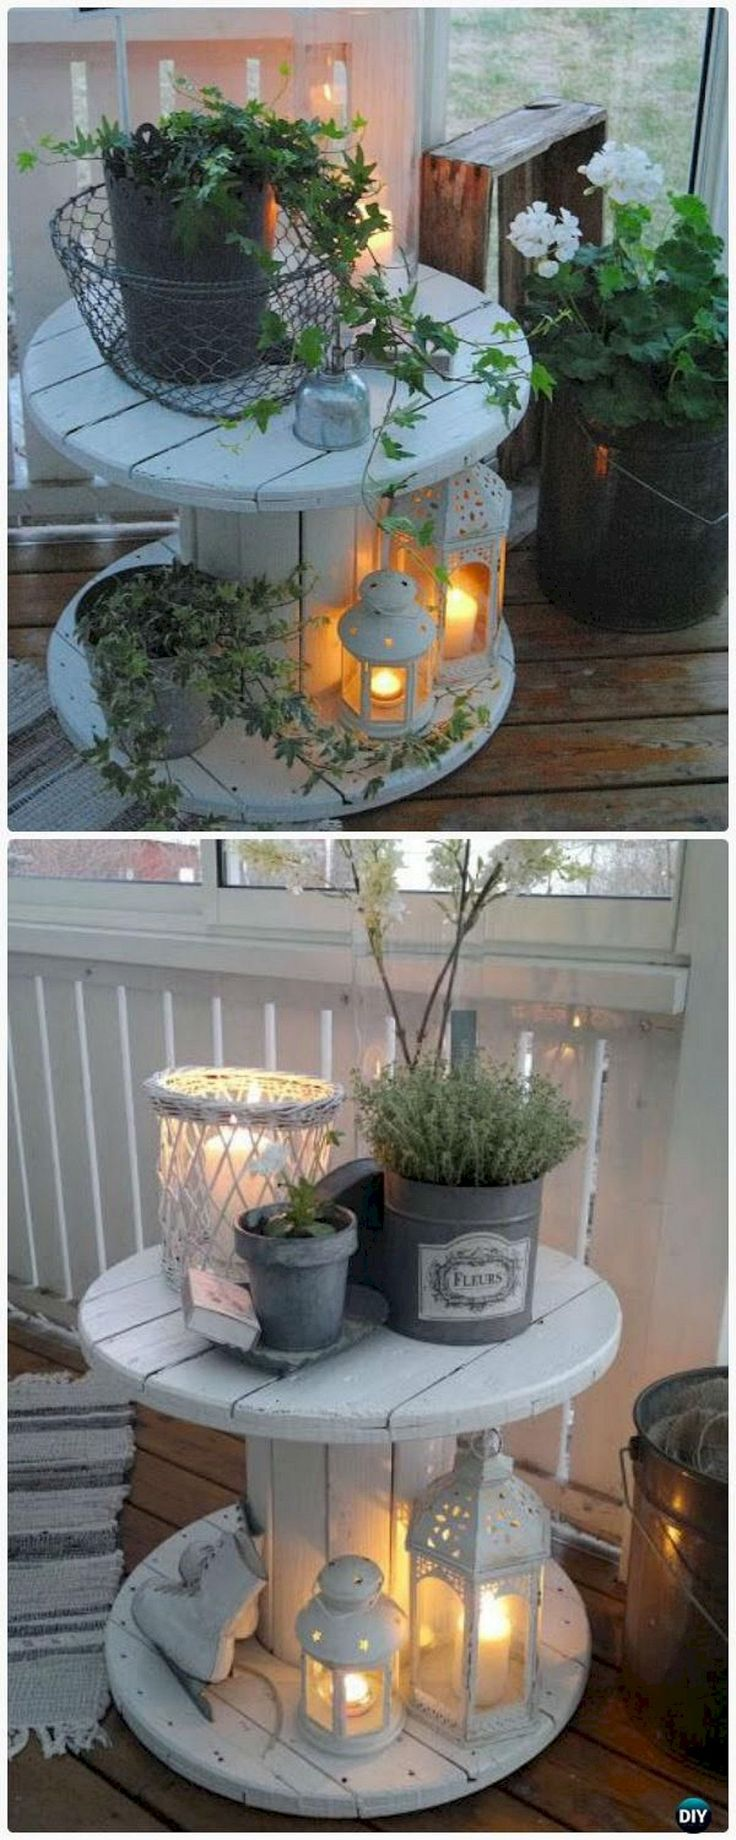 Cool Top 88 Marvelous DIY Recycled Wire Spool Furniture Ideas For Your Home https://freshouz.com/top-88-marvelous-diy-recycled-wire-spool-furniture-ideas-home/